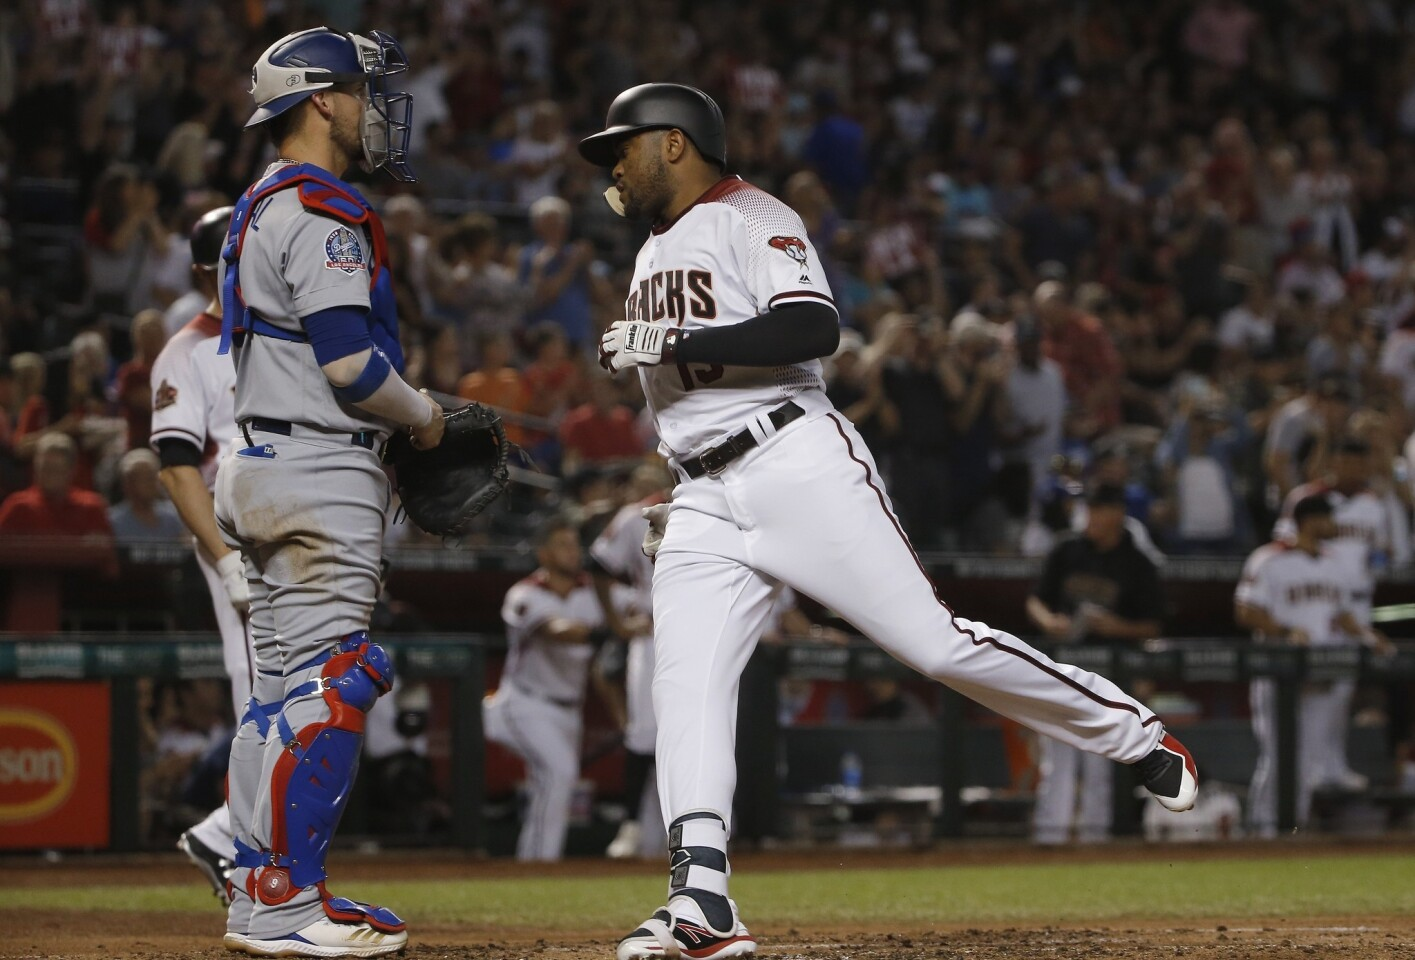 Arizona Diamondbacks' Socrates Brito, right, crosses home plate after hitting a home run as Los Angeles Dodgers catcher Yasmani Grandal, left, stands by during the second inning of a baseball game Wednesday, Sept. 26, 2018, in Phoenix. (AP Photo/Ross D. Franklin)